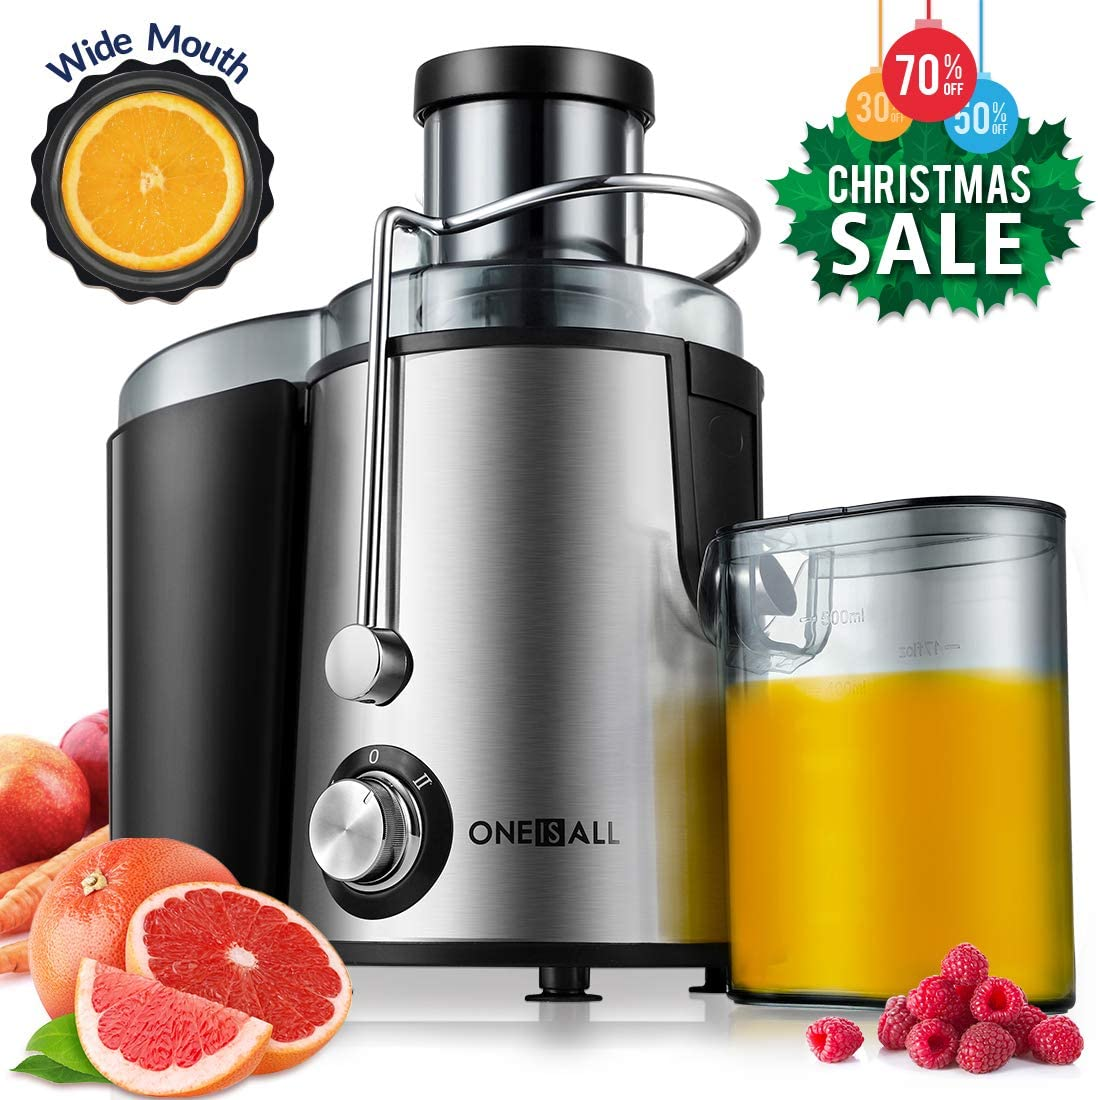 Juicer, Oneisall Juice Extractor with Anti Drip Spout, Ultra Fast Extract Centrifugal Juicer for Fruits and Vegetables, Easy to Clean plus Quiet Motor